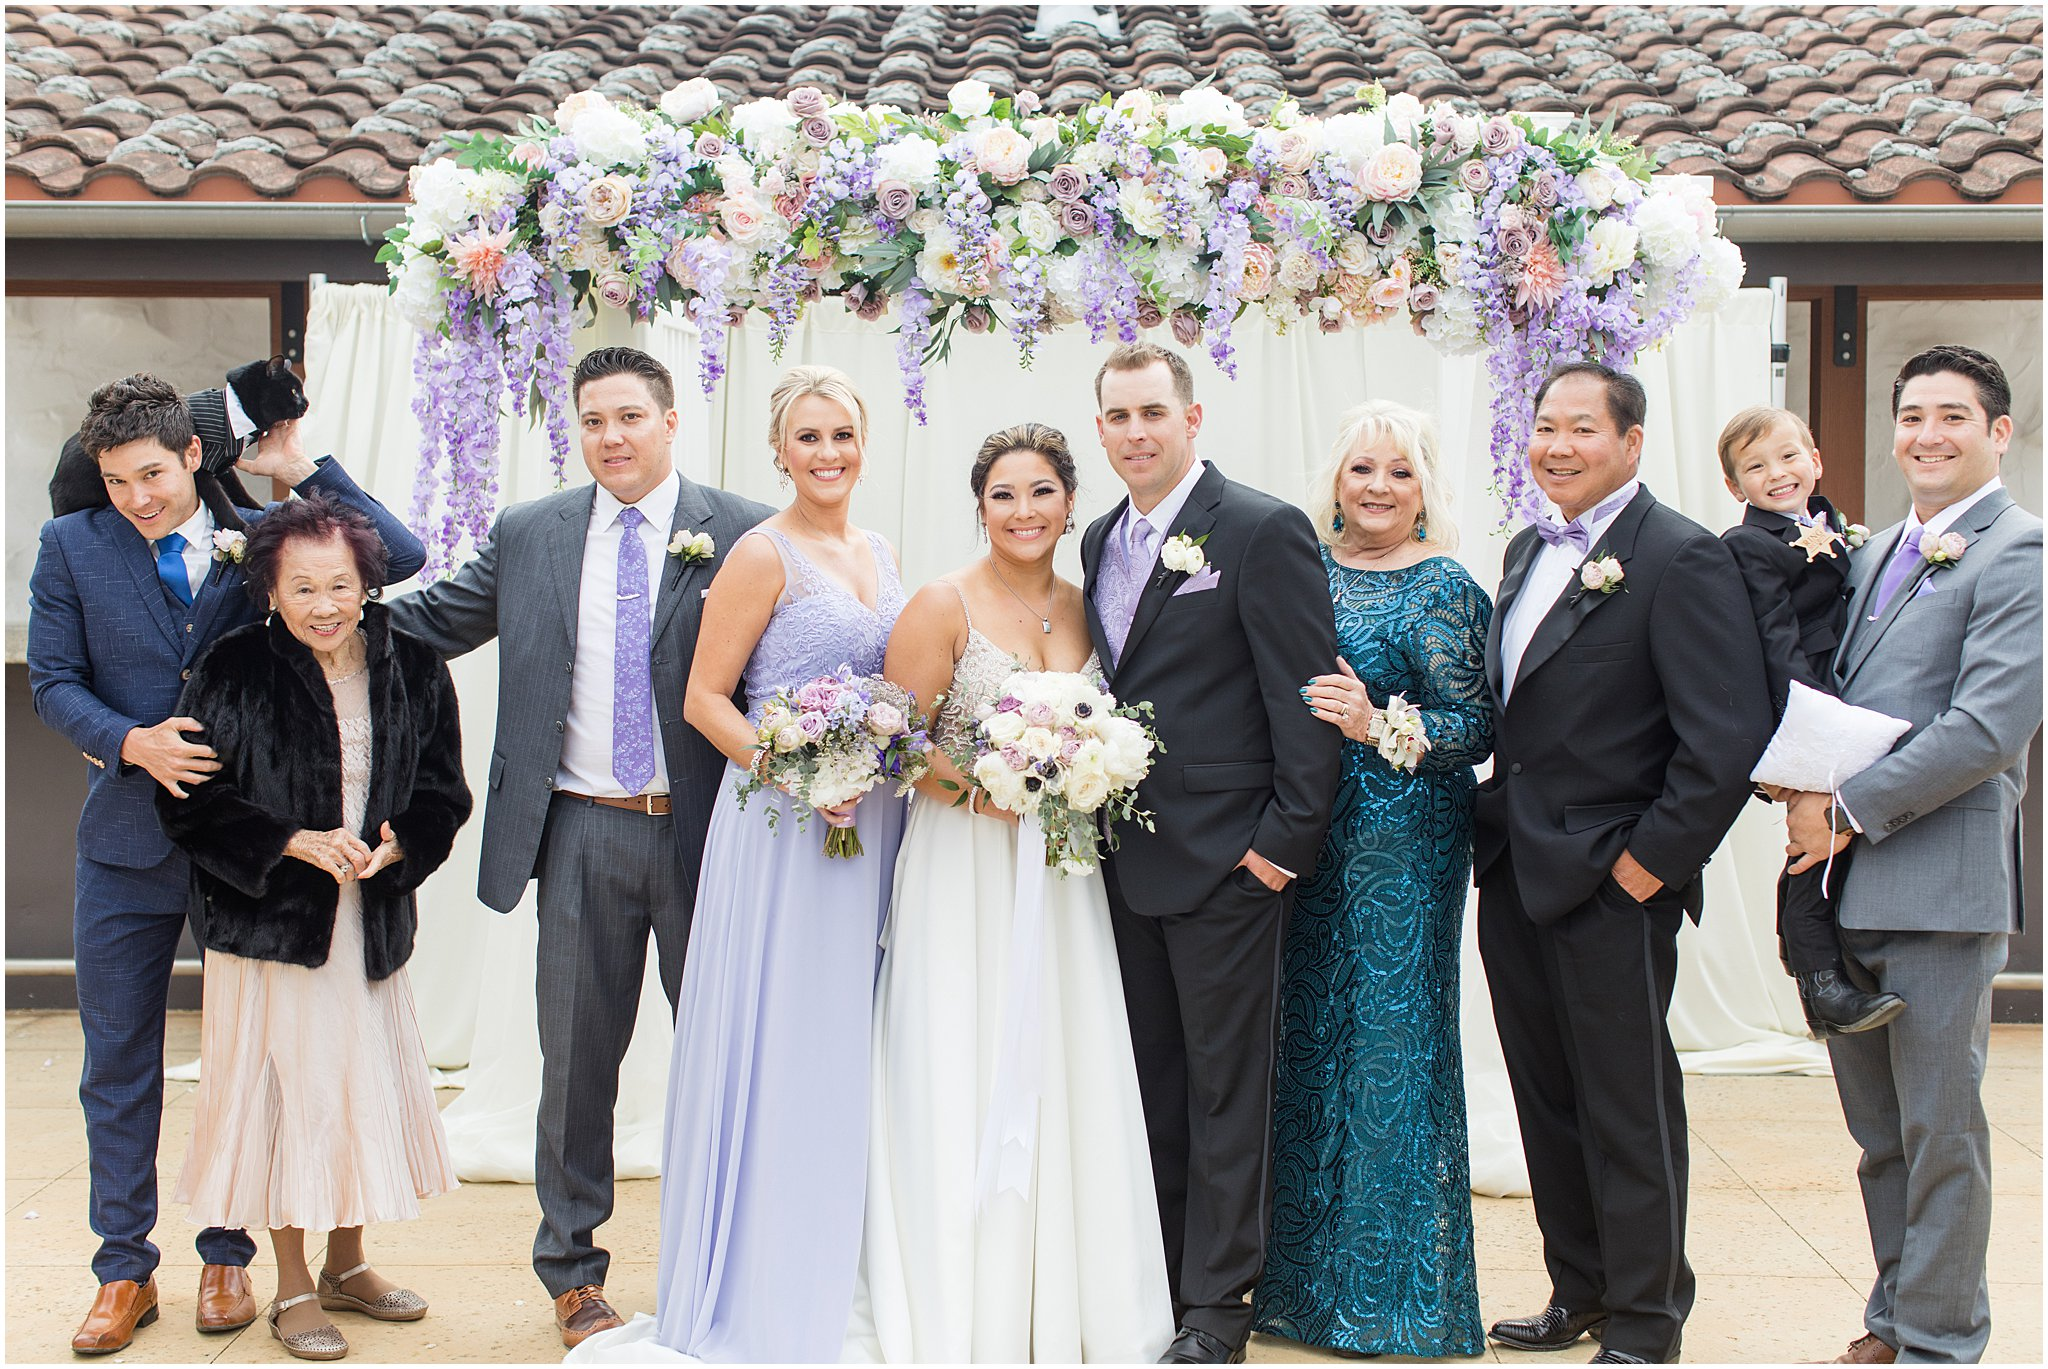 2019 wedding san juan bautista hacienda de leal vineyards bay area wedding photographer_0057.jpg